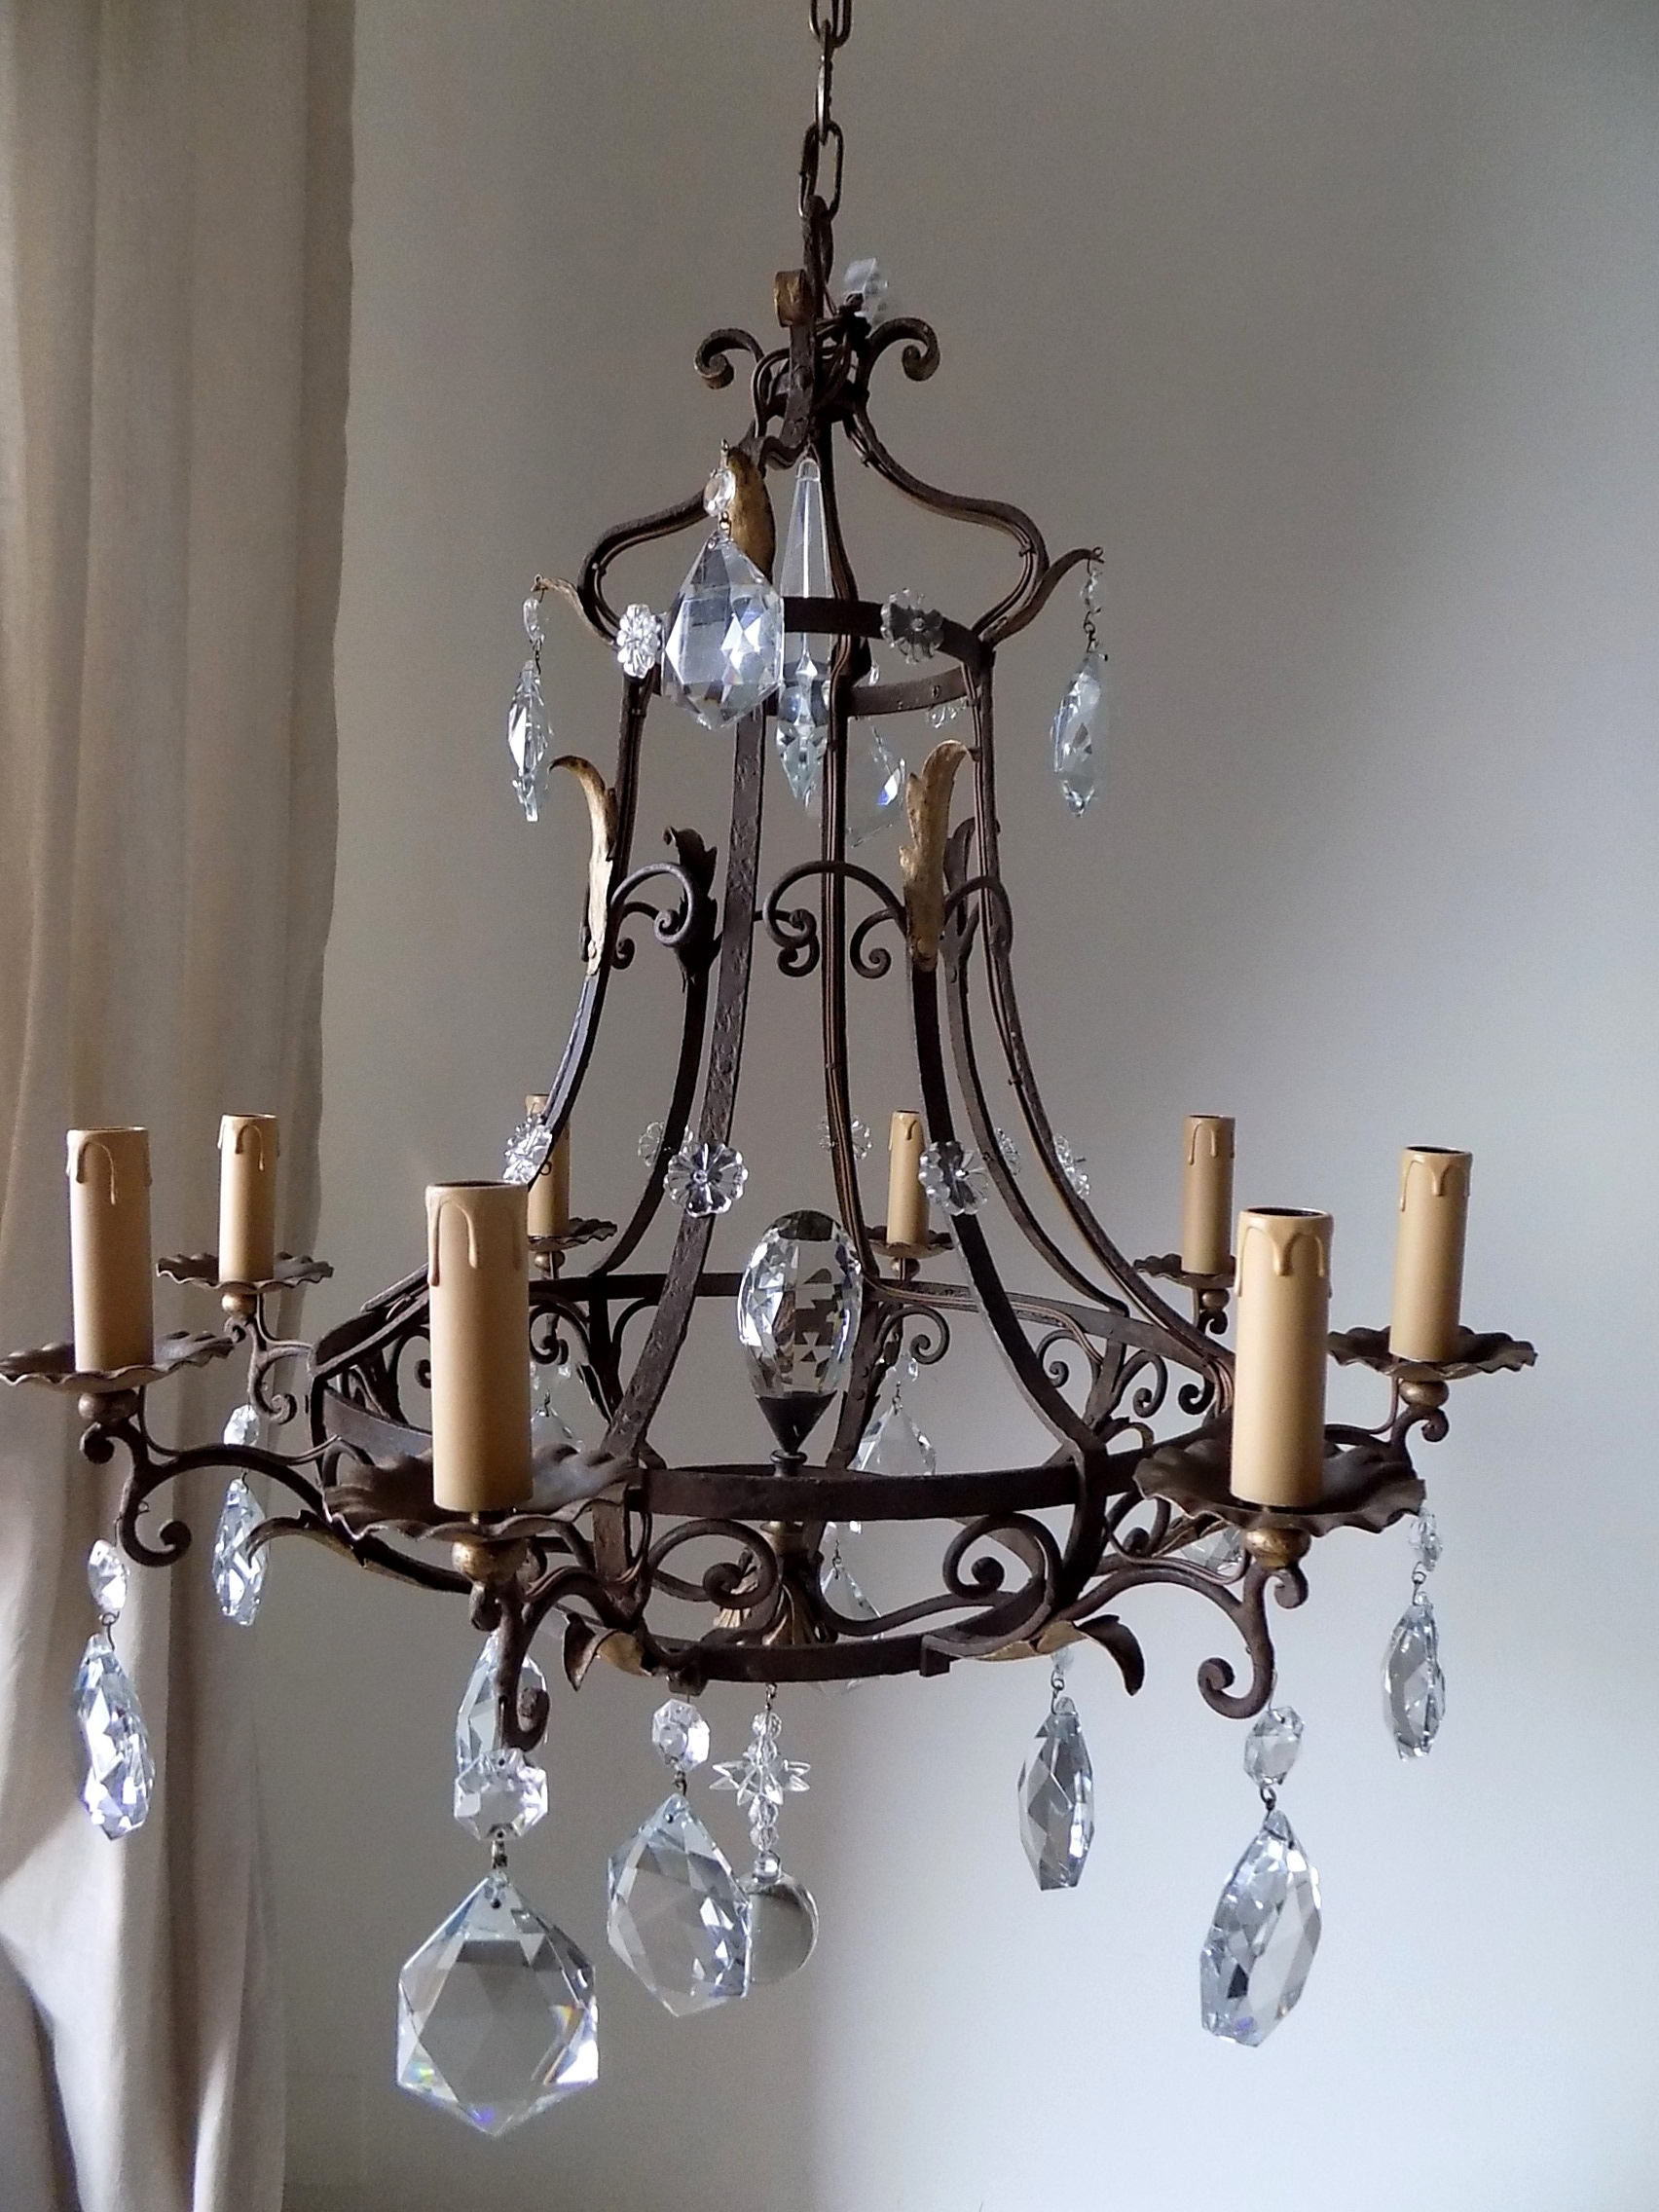 Popular Antique French Iron Chandeliers – Dayri With Regard To French Antique Chandeliers (View 18 of 20)